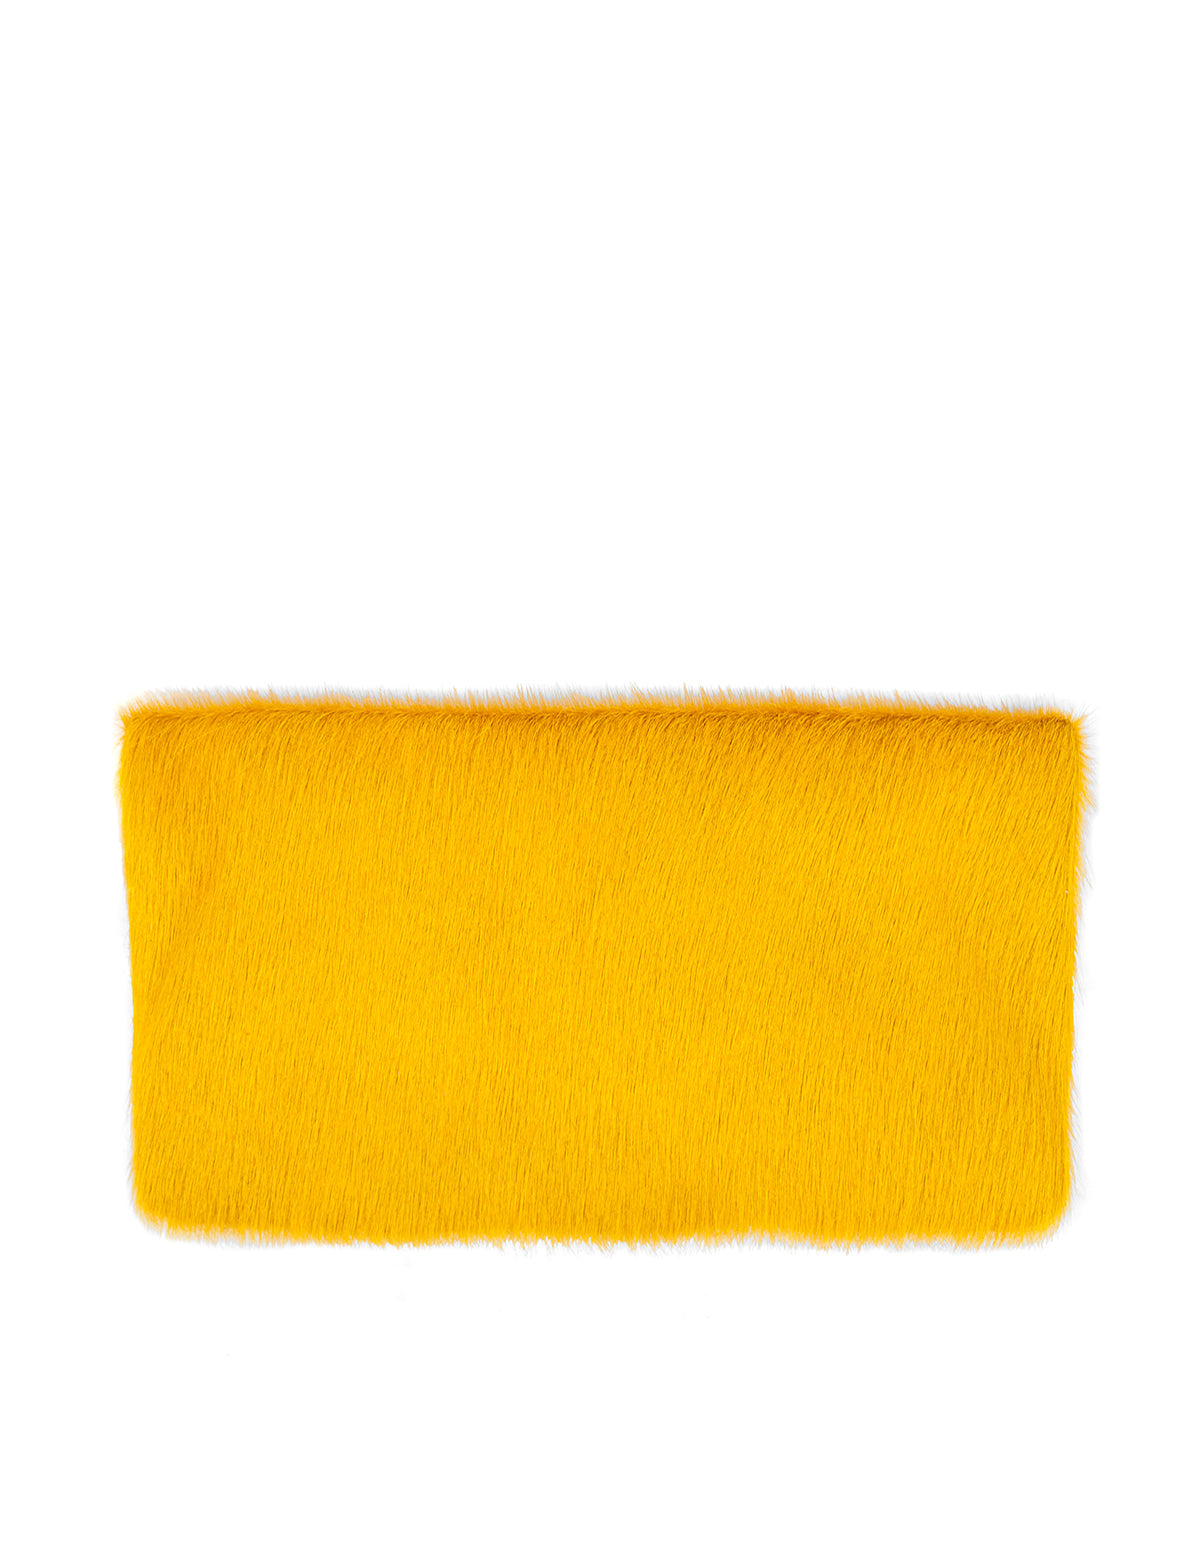 Clare V. Foldover Clutch Yellow Hair-On